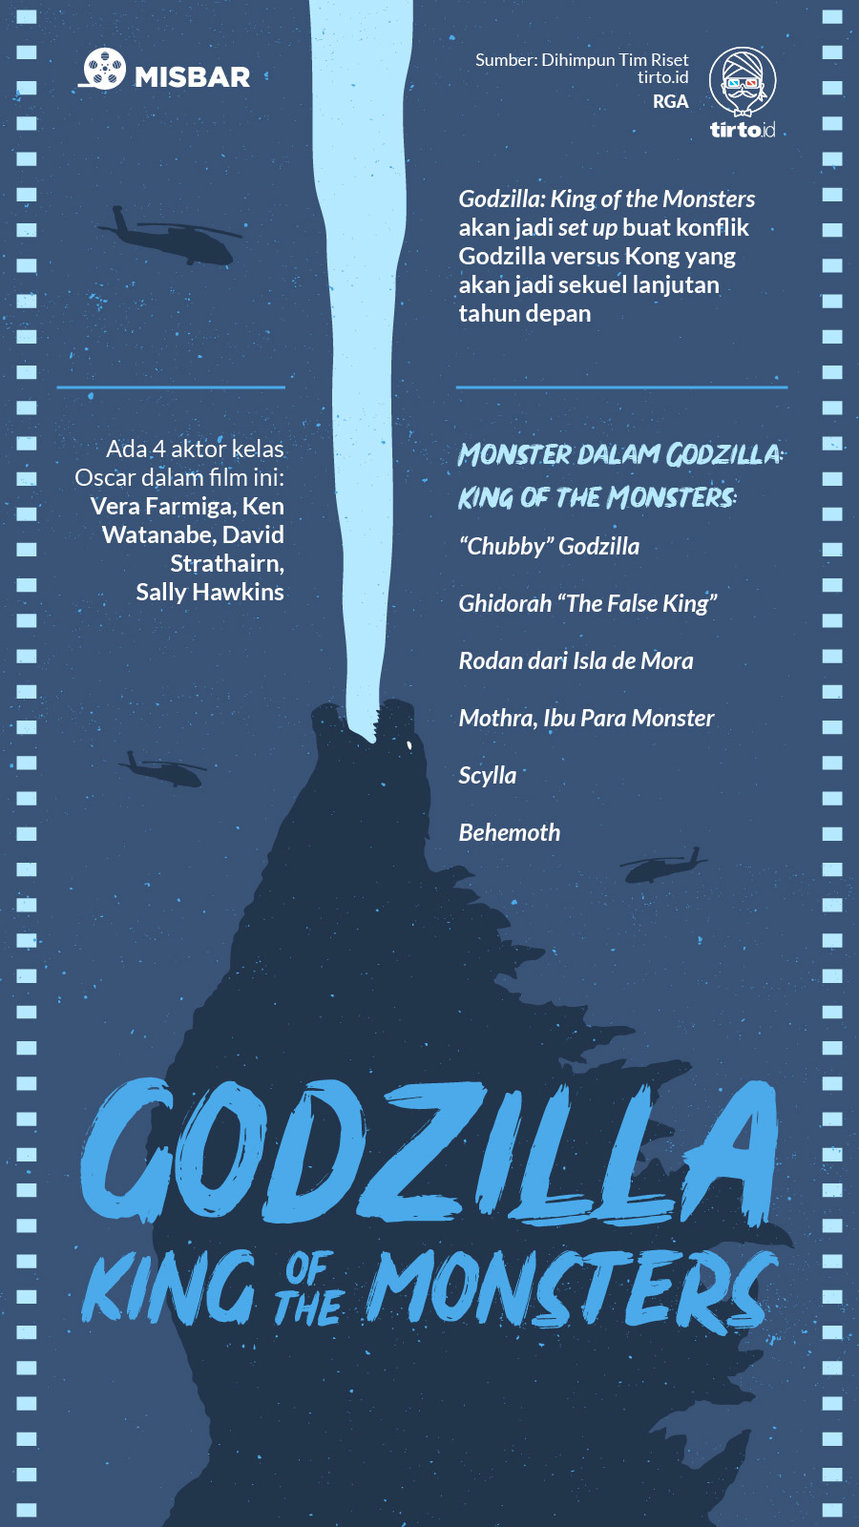 Infografik Godzilla King Of the Monsters